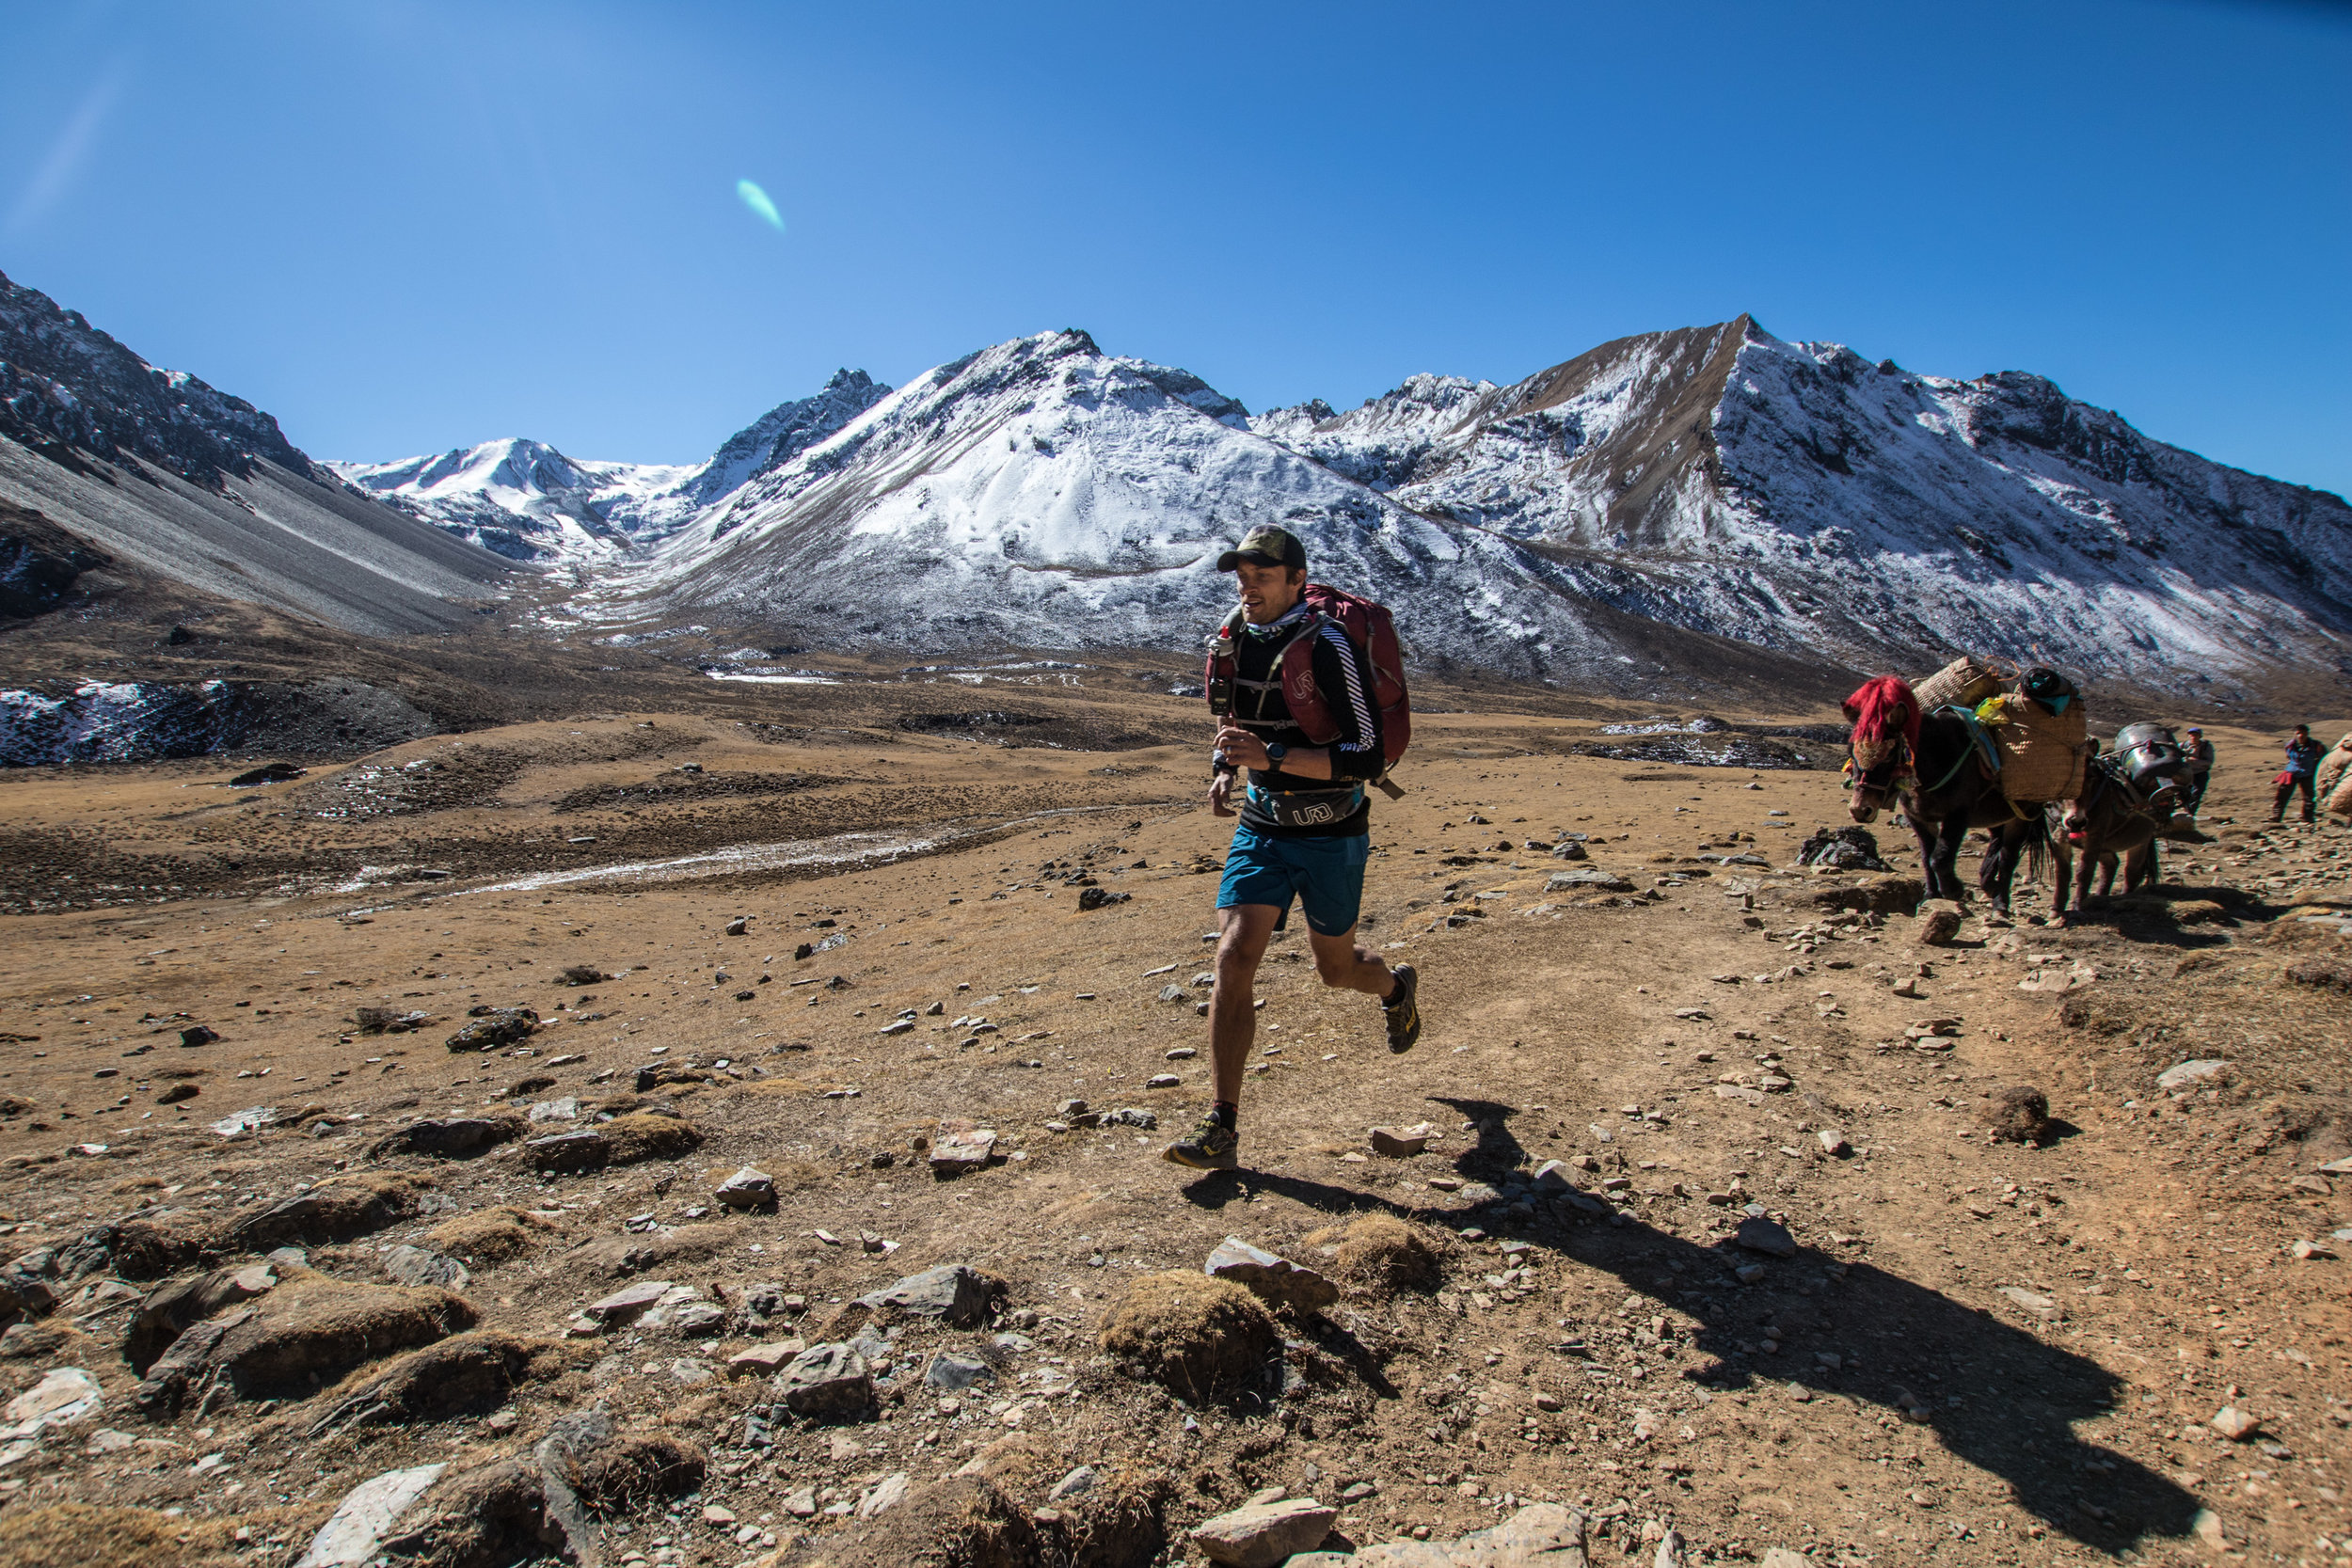 Tour de Trails' Owner and Lead guide, Chris Ord, pumped that he can run faster at 4300 metres in bhutan than a mule carrying ten times the weight. AT LEAST THE MULE'S NOT A HEEL STRIKER…BETTER HEADWEAR, tOO..